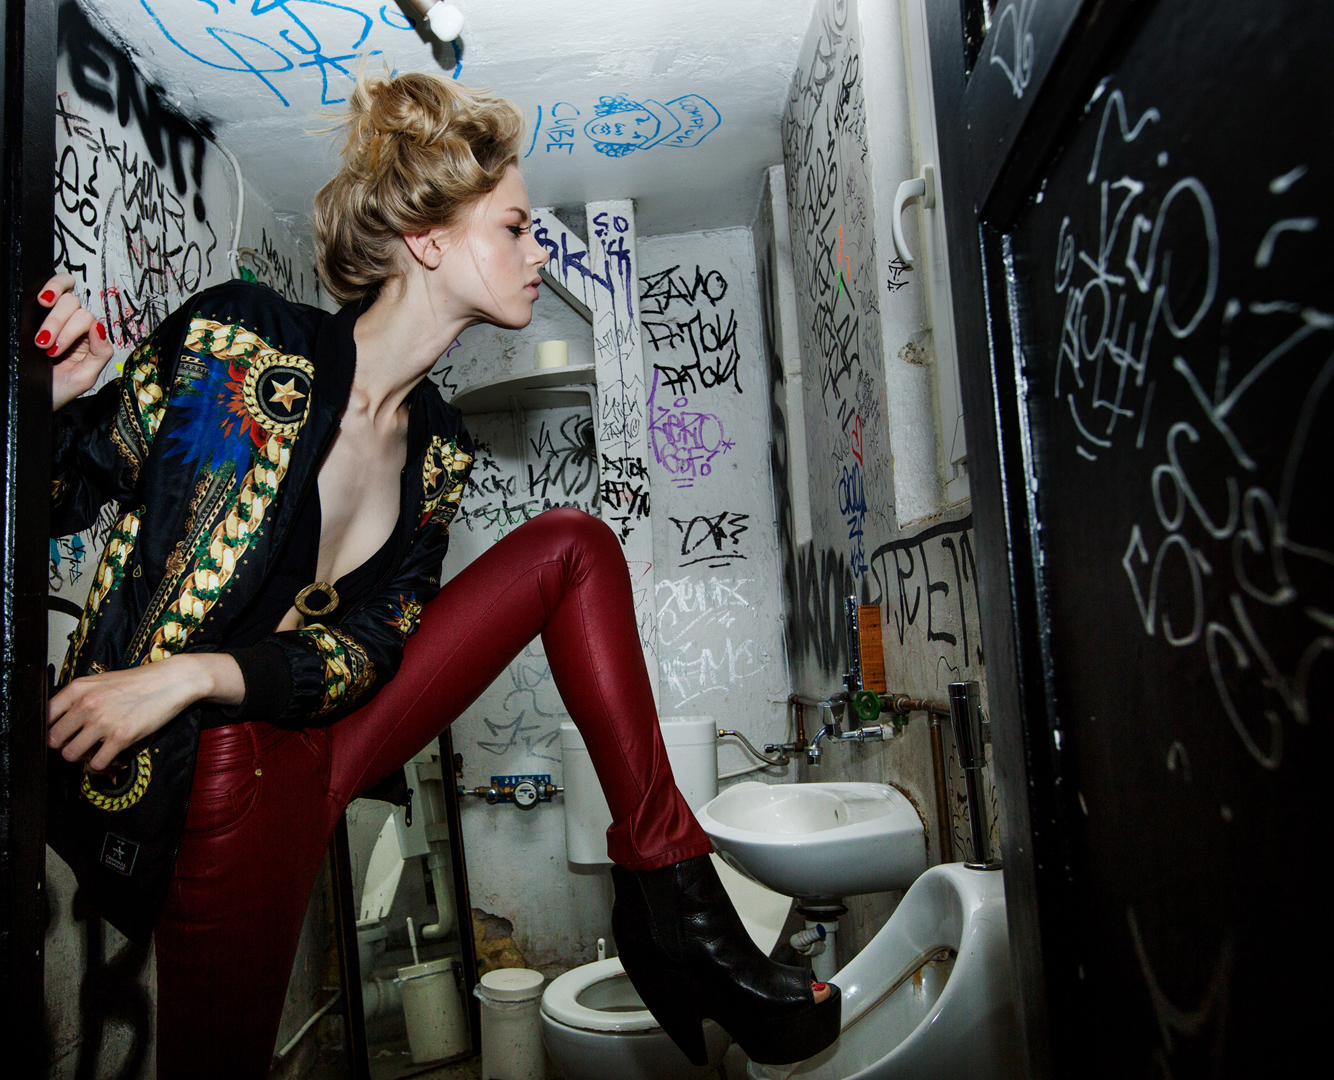 fashion girl toilette grafitti